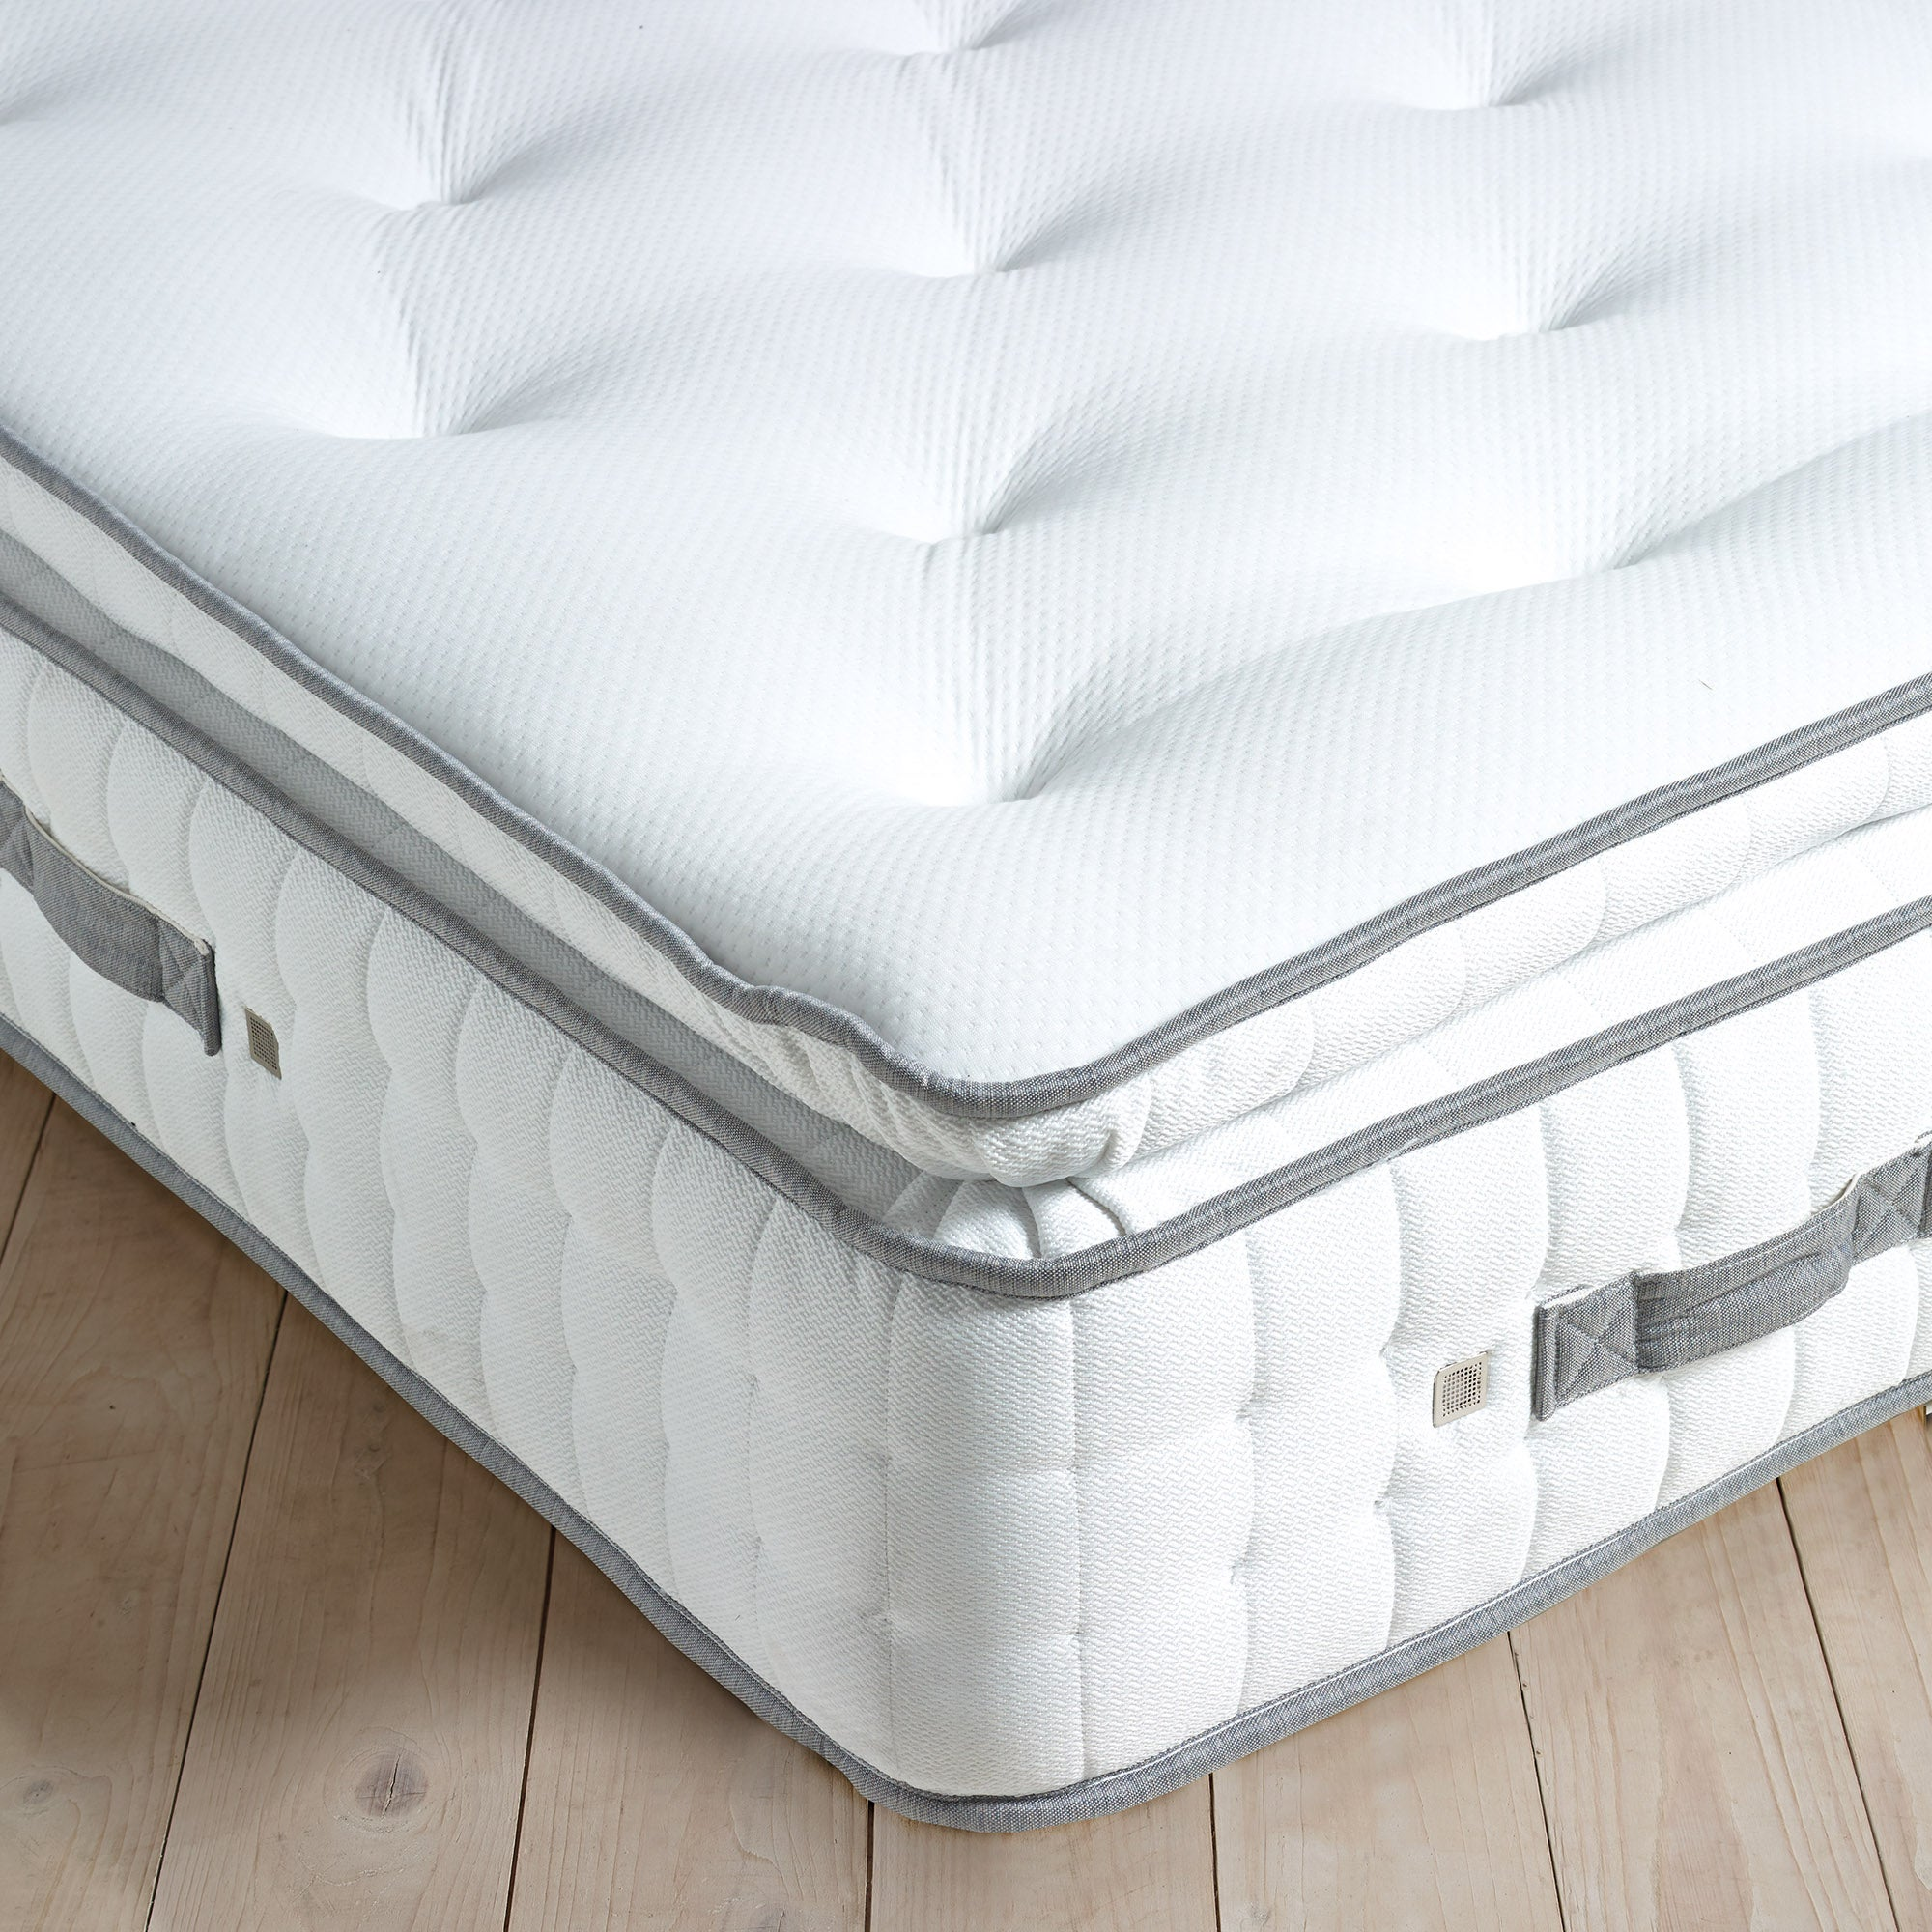 Image of Hotel 3000 Pillow Top Mattress White